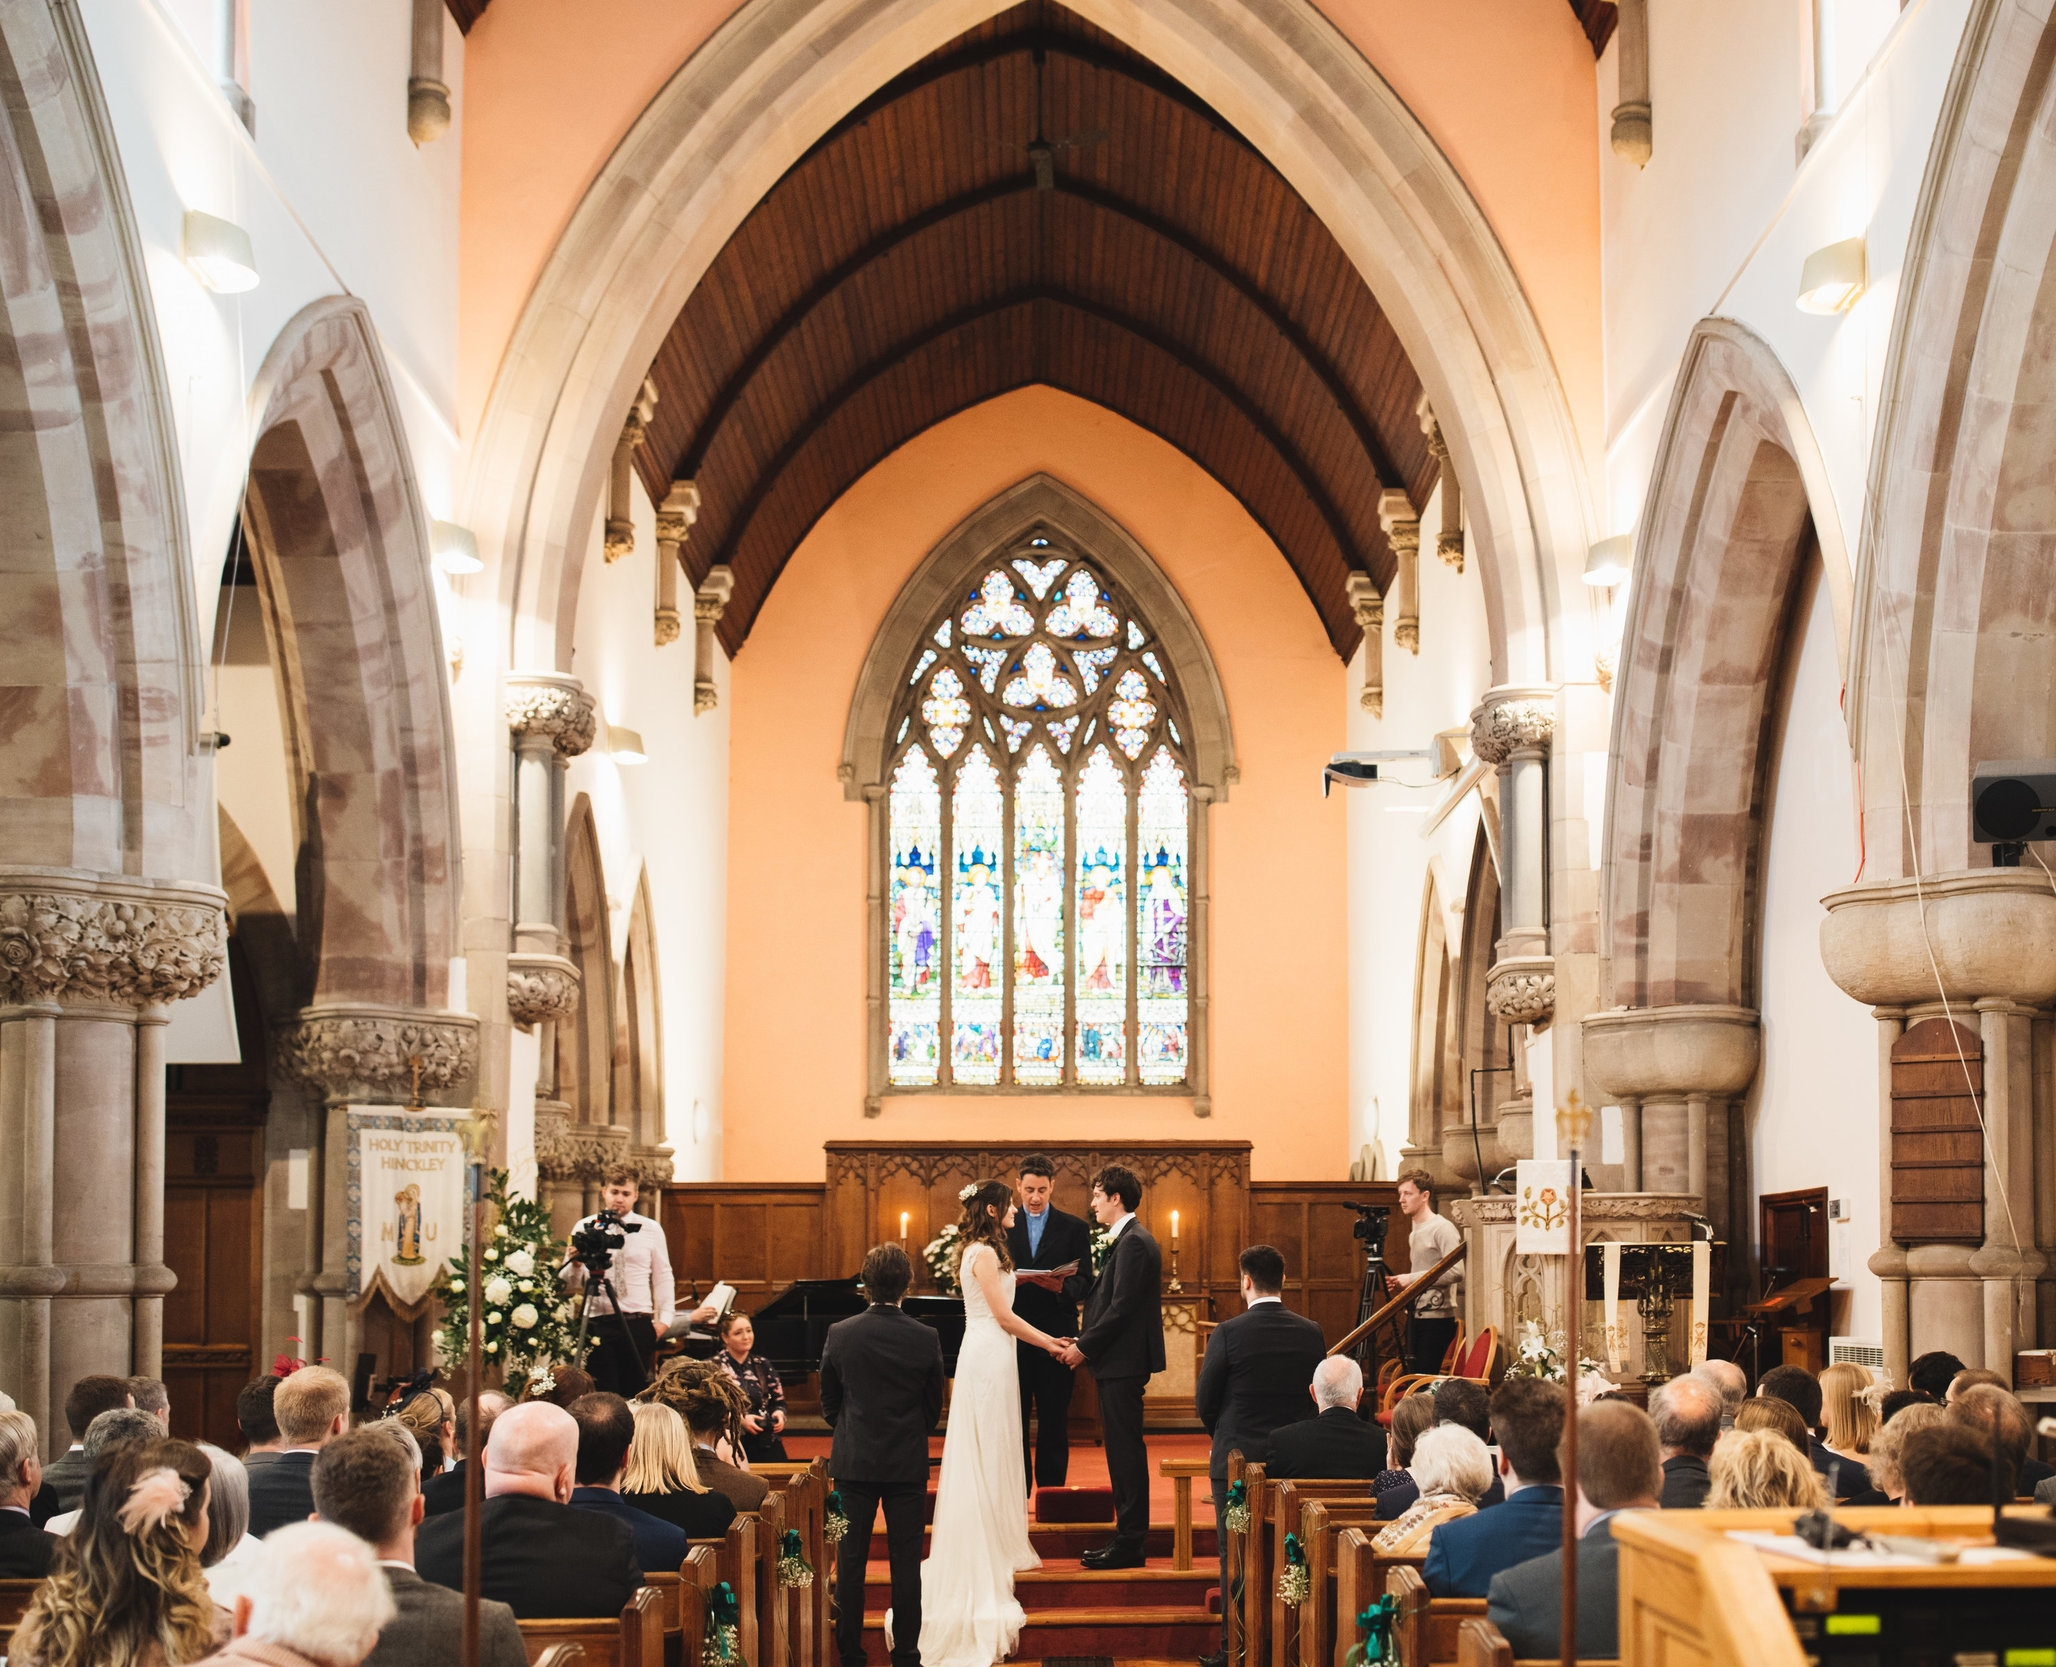 Getting married at holy trinity -